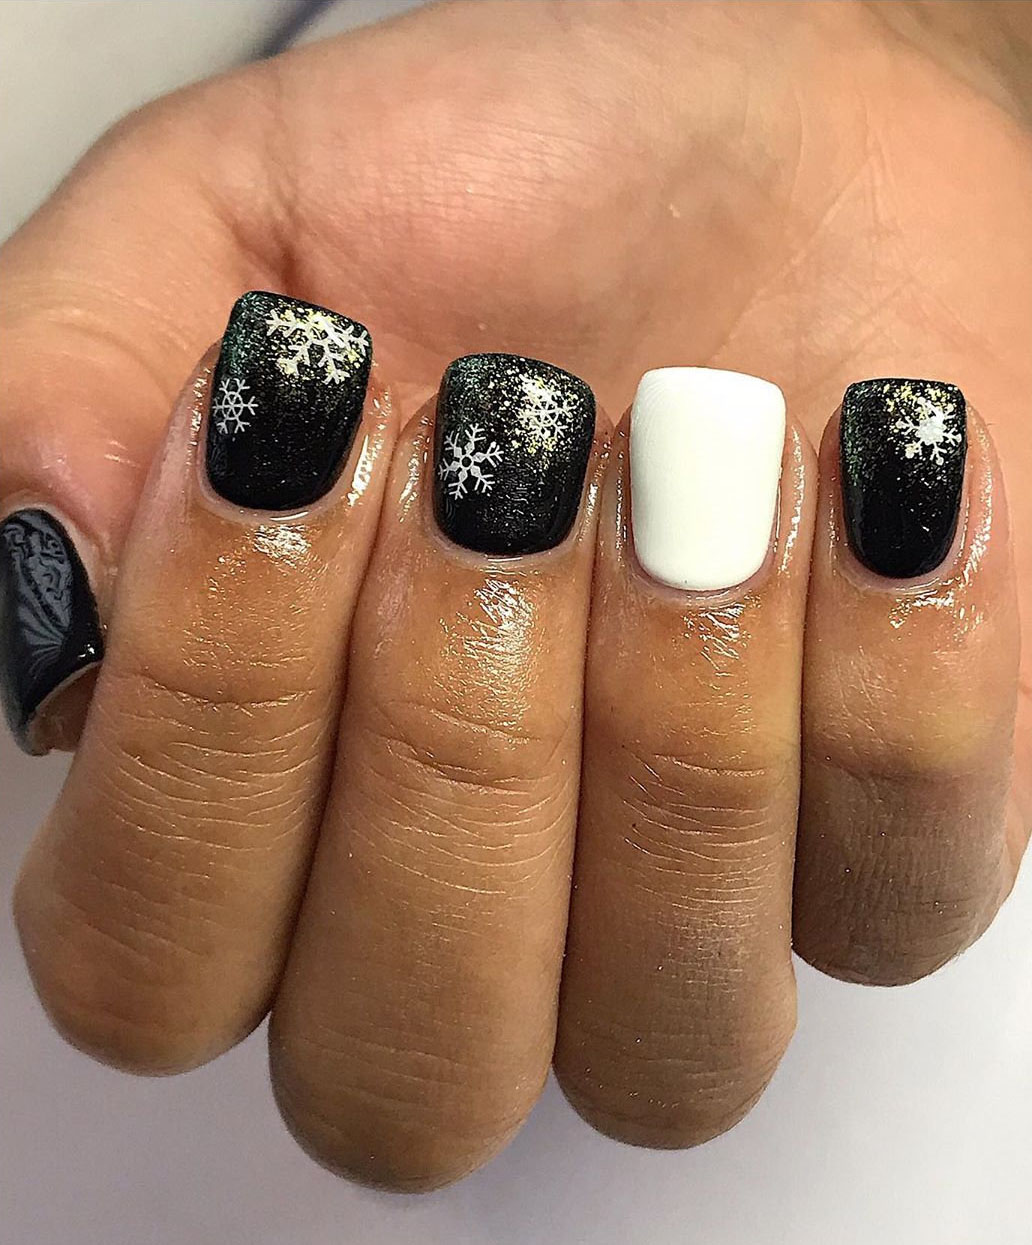 Simple black nails designs it match with glitter stick or dip powder, looks so edgy and stylish! It make you in perfect in all years. Say hello to these 40 black nails ideas!   flymeso.com